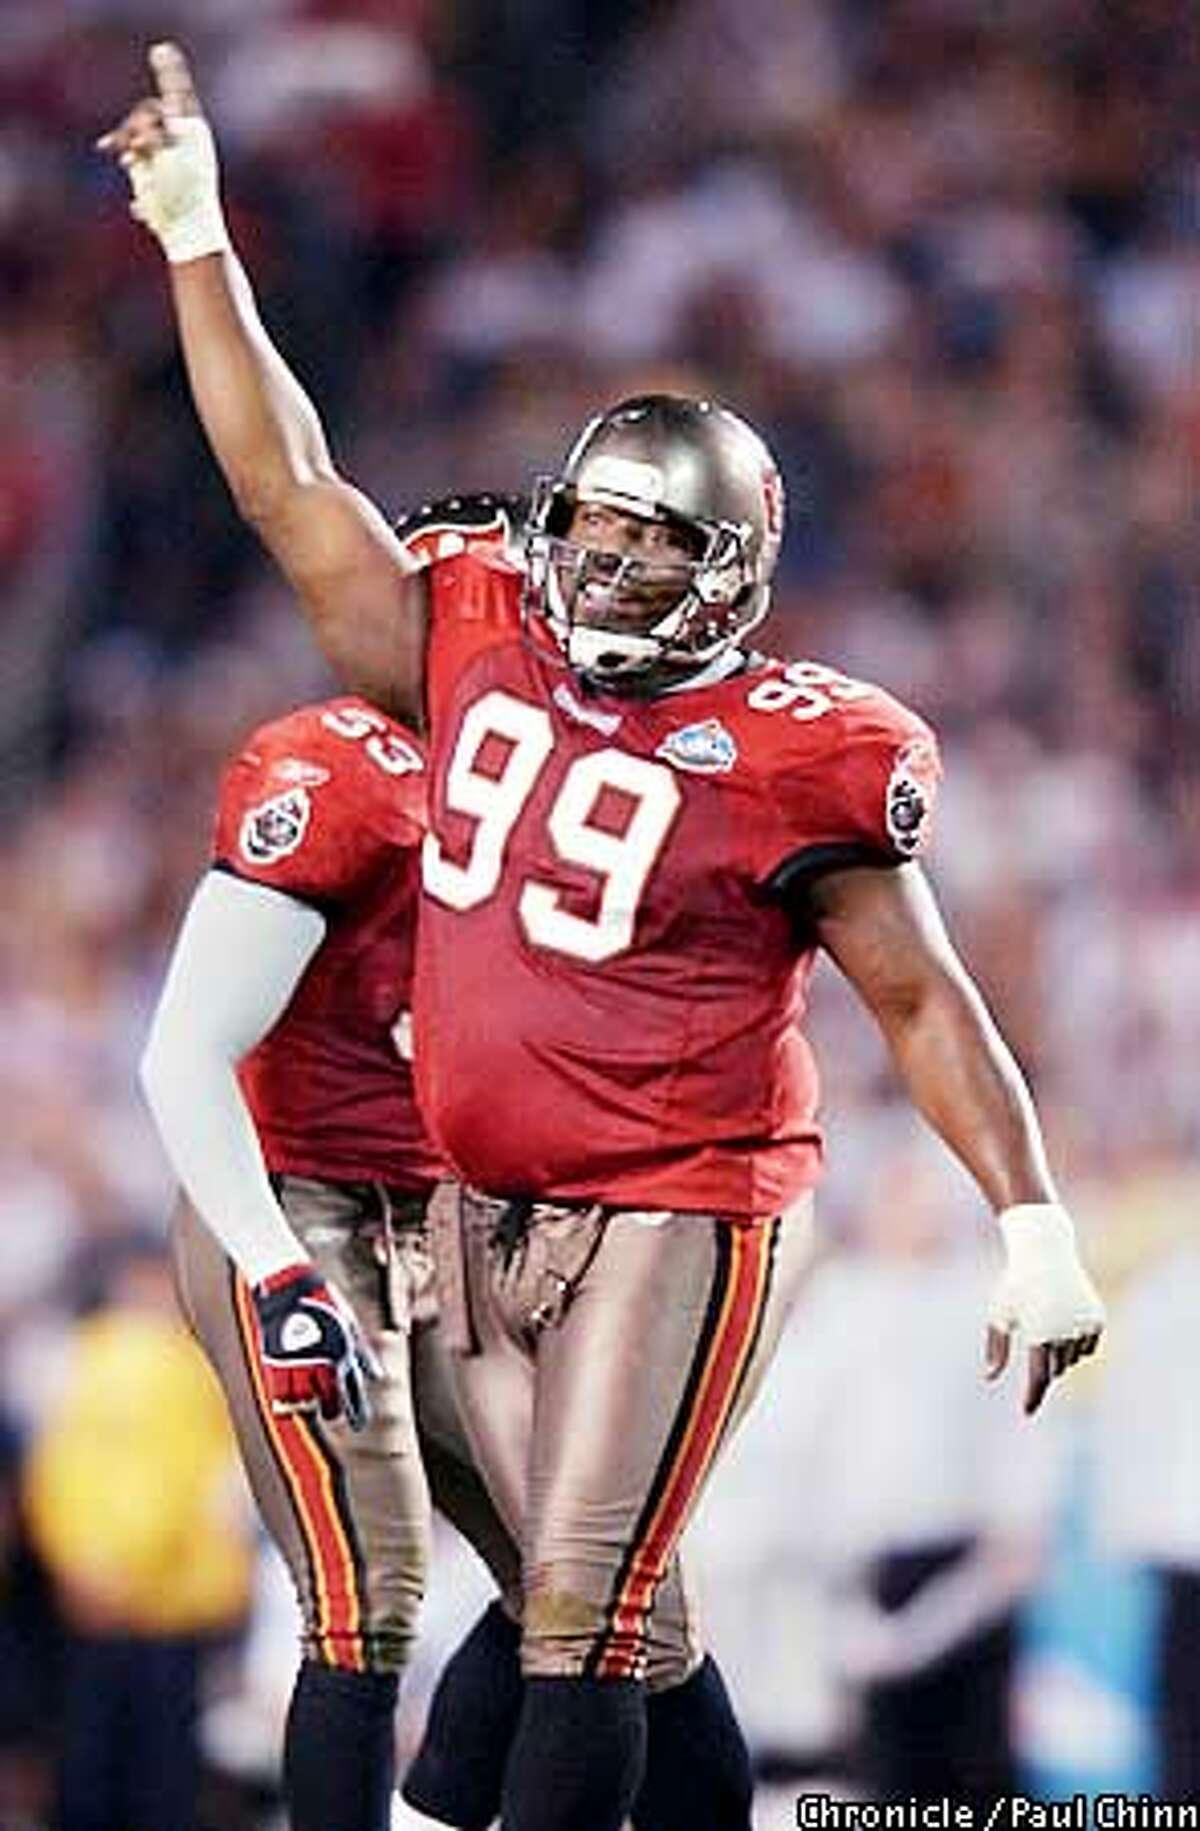 Warren Sapp is one of the few players on the Bucs' defense who ranks with the Pittsburgh greats. Chronicle photo by Paul Chinn